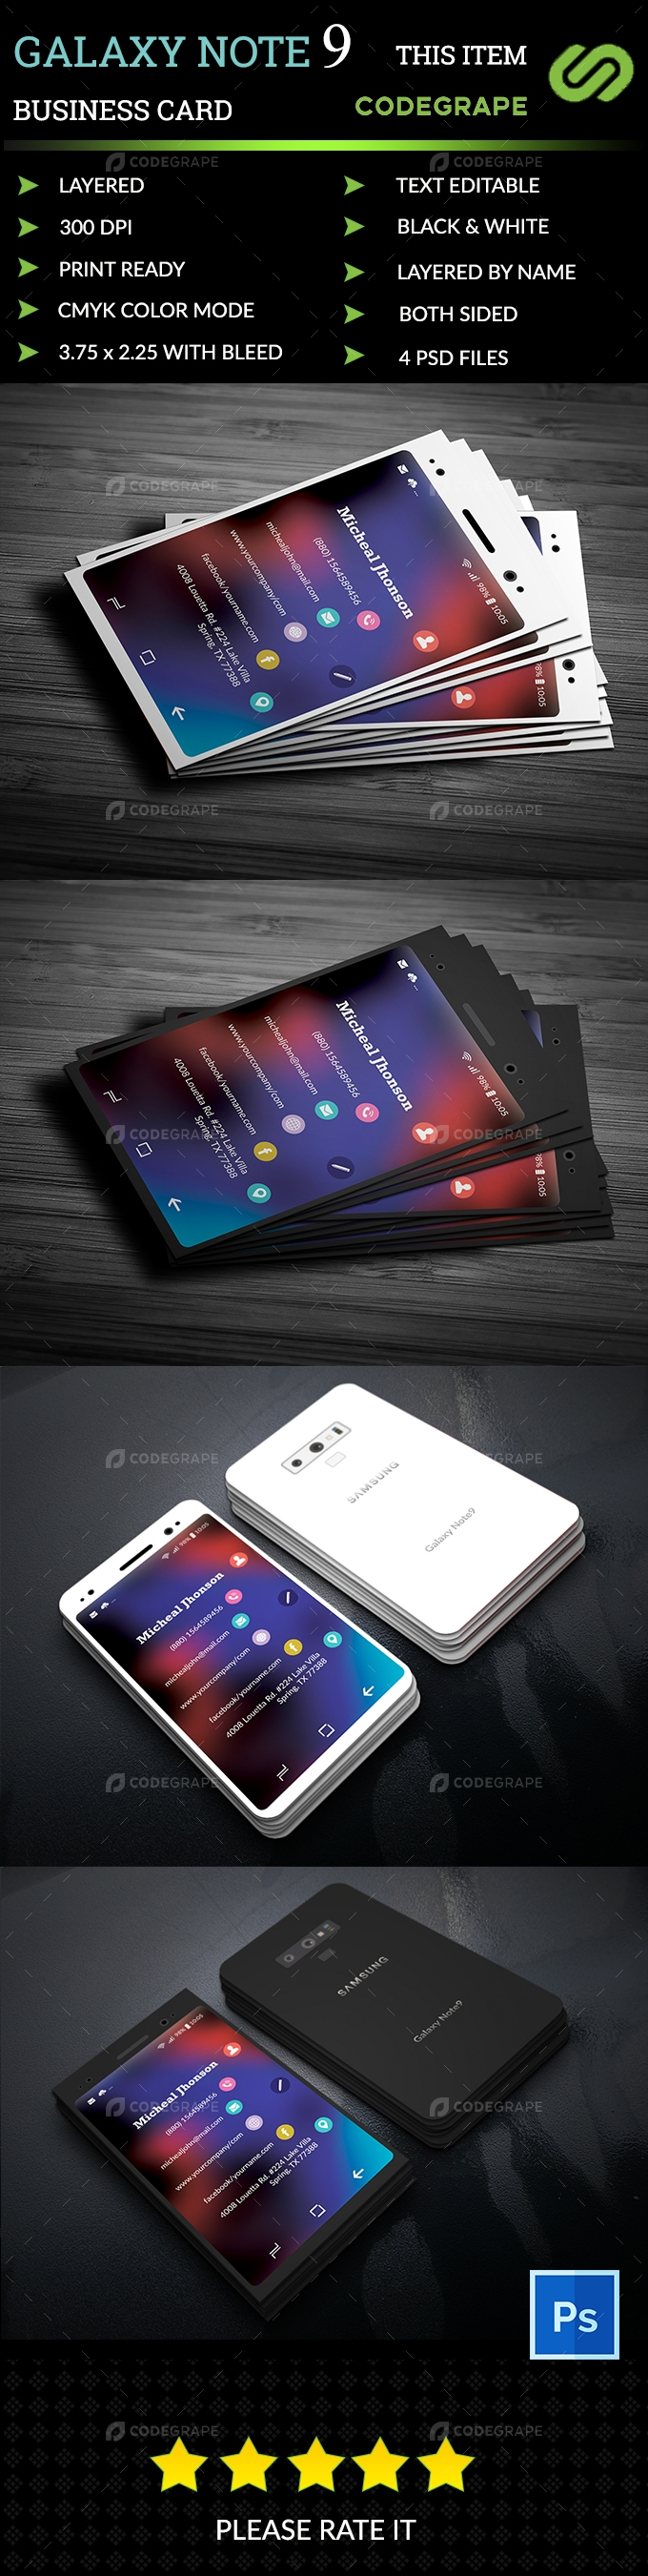 Galaxy Note9 Business Card